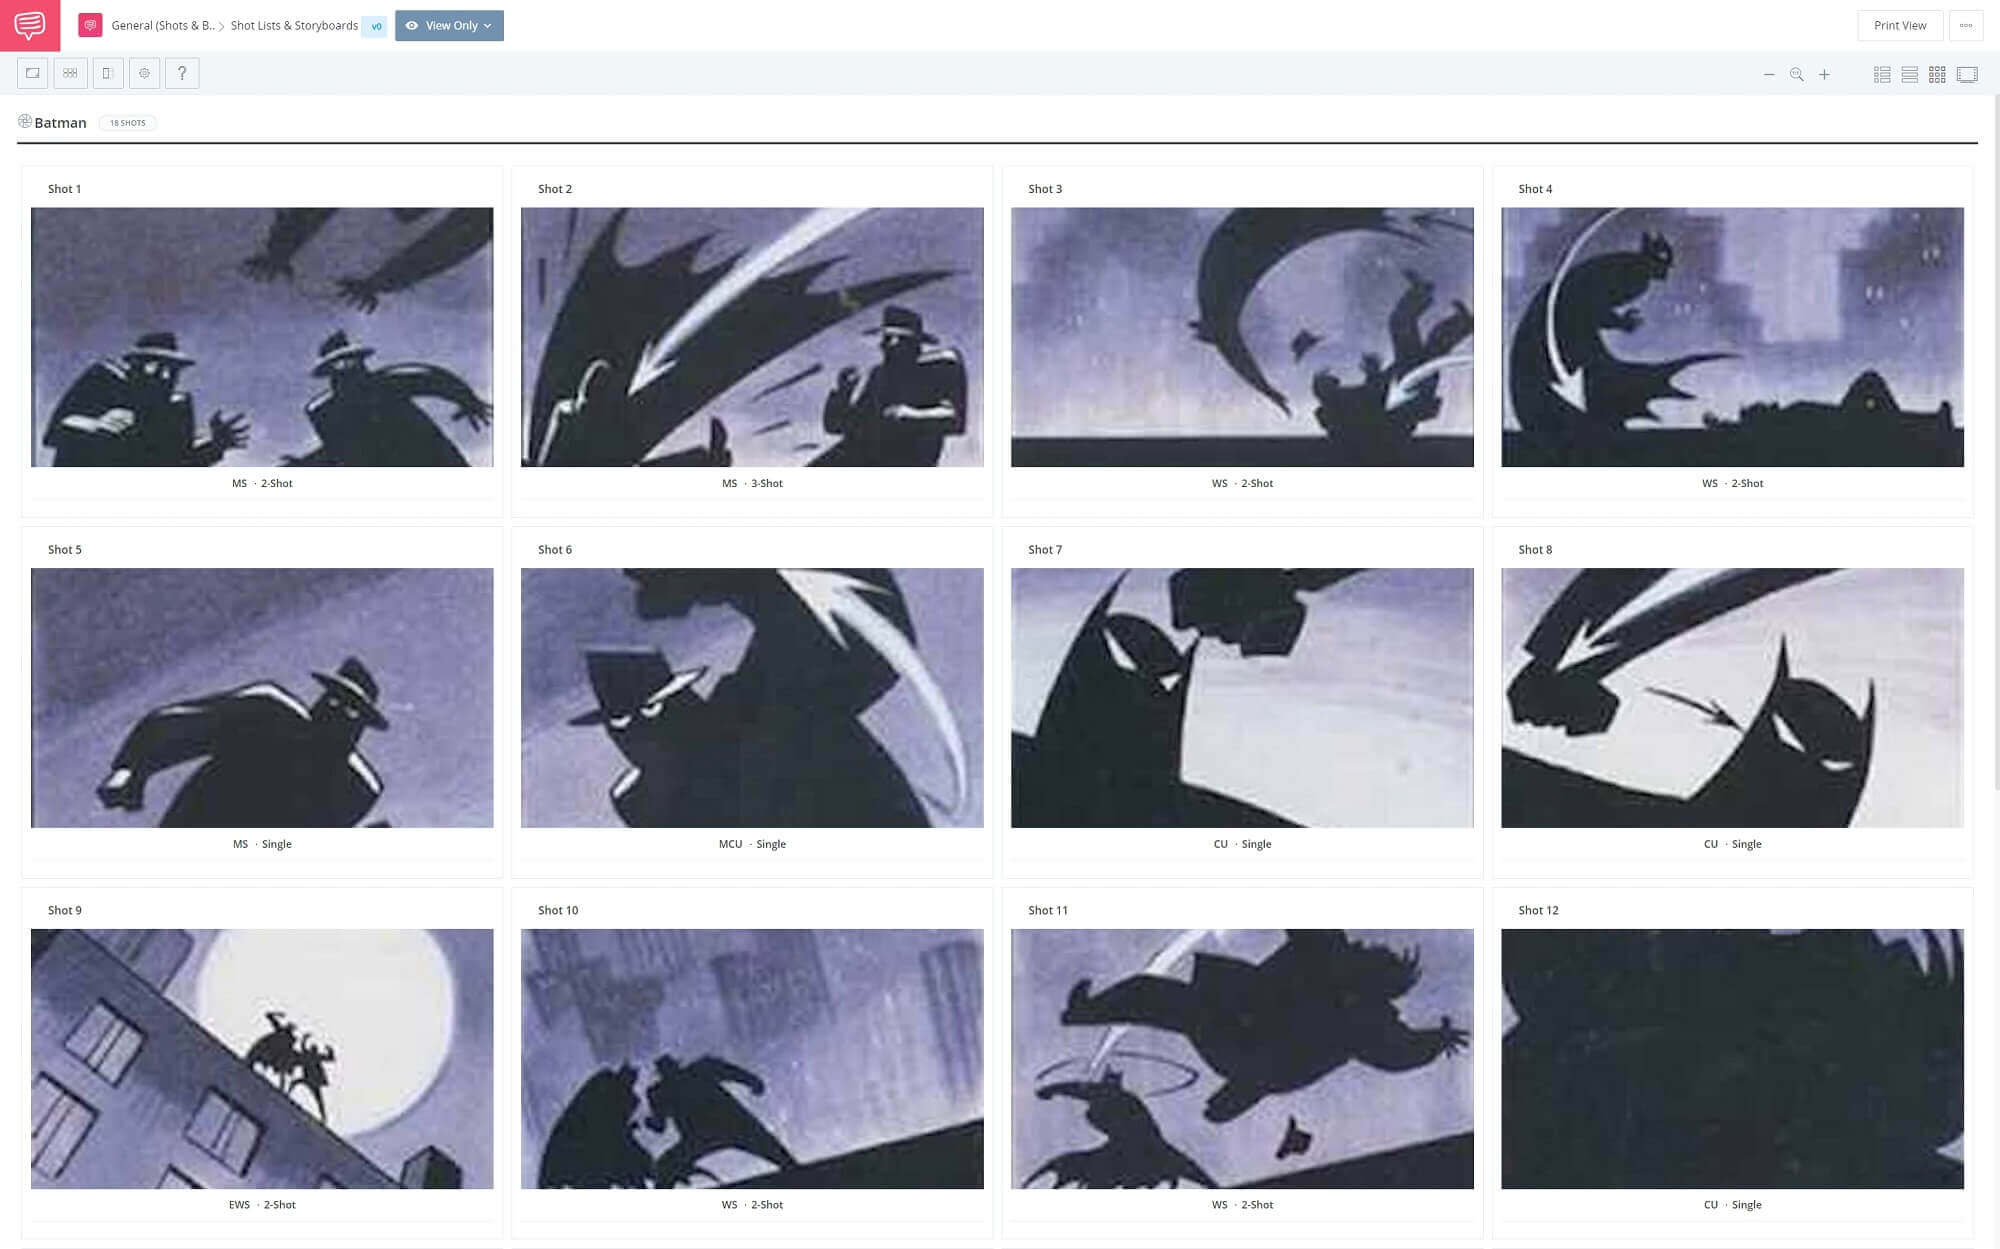 Film Storyboard Example - Batman The Animated Series Storyboard - StudioBinder Storyboarding Software